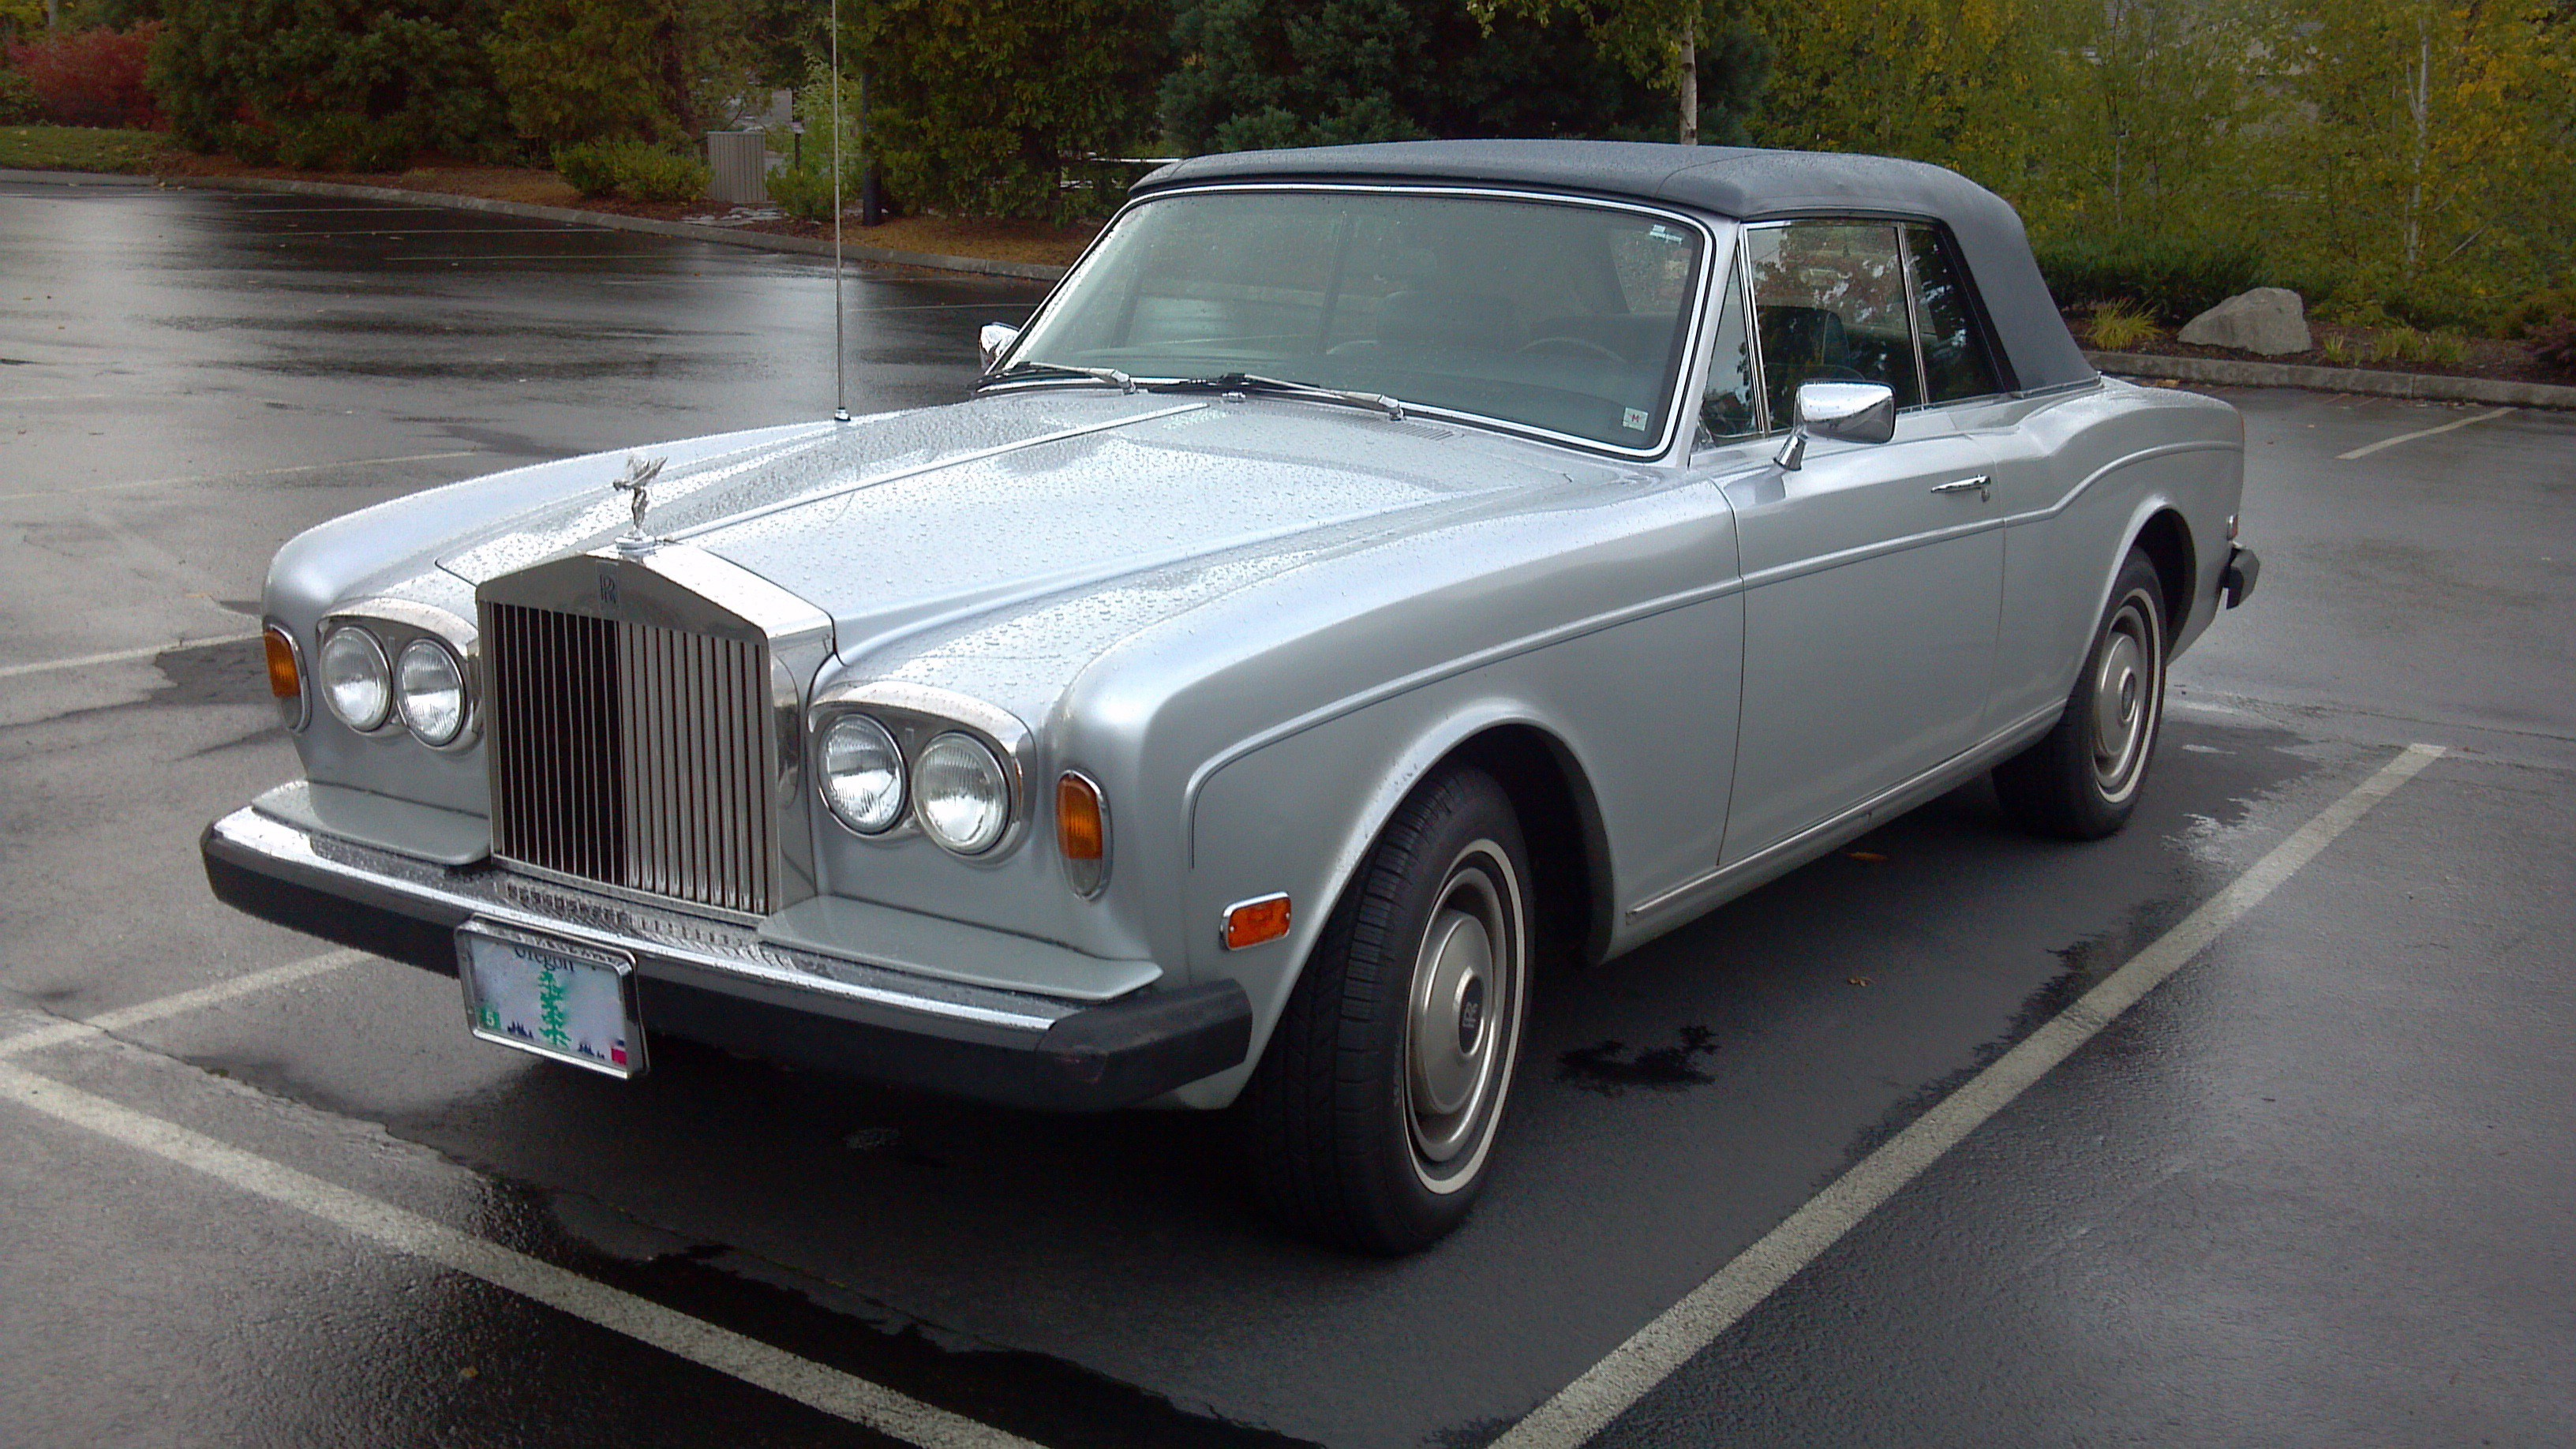 Rolls-Royce Corniche I - IV 1971 - 1995 Sedan 2 door #3